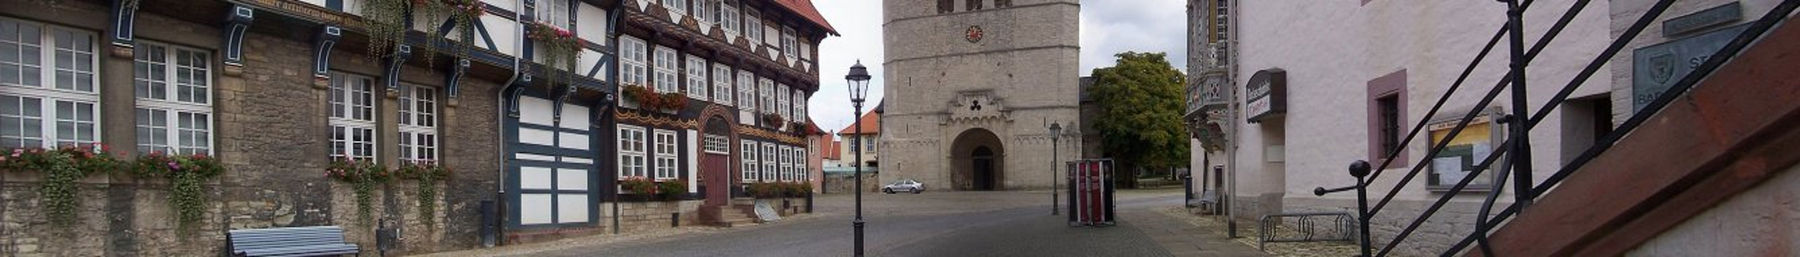 Bad Gandersheim banner Old buildings.jpg